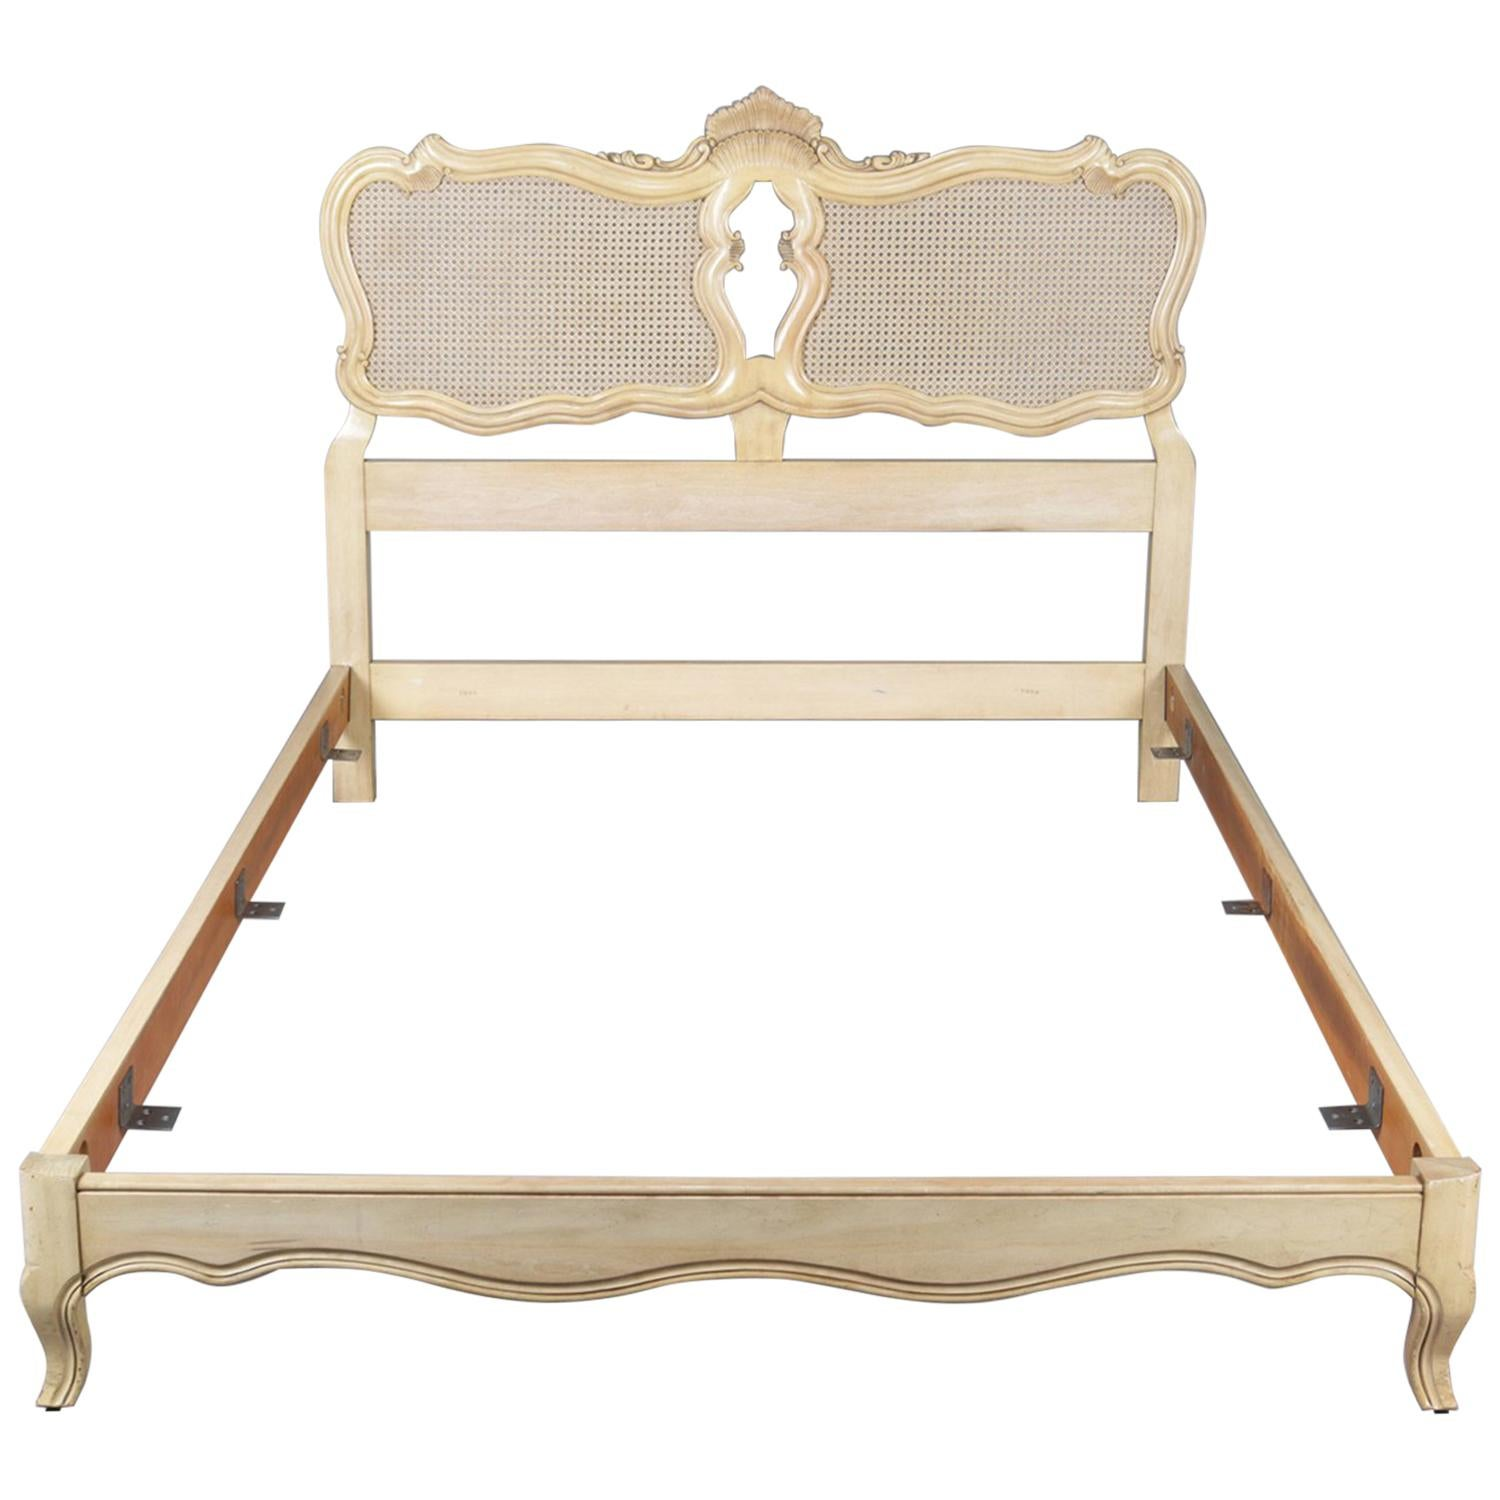 Nice French Provincial Bedroom Set Plans Free